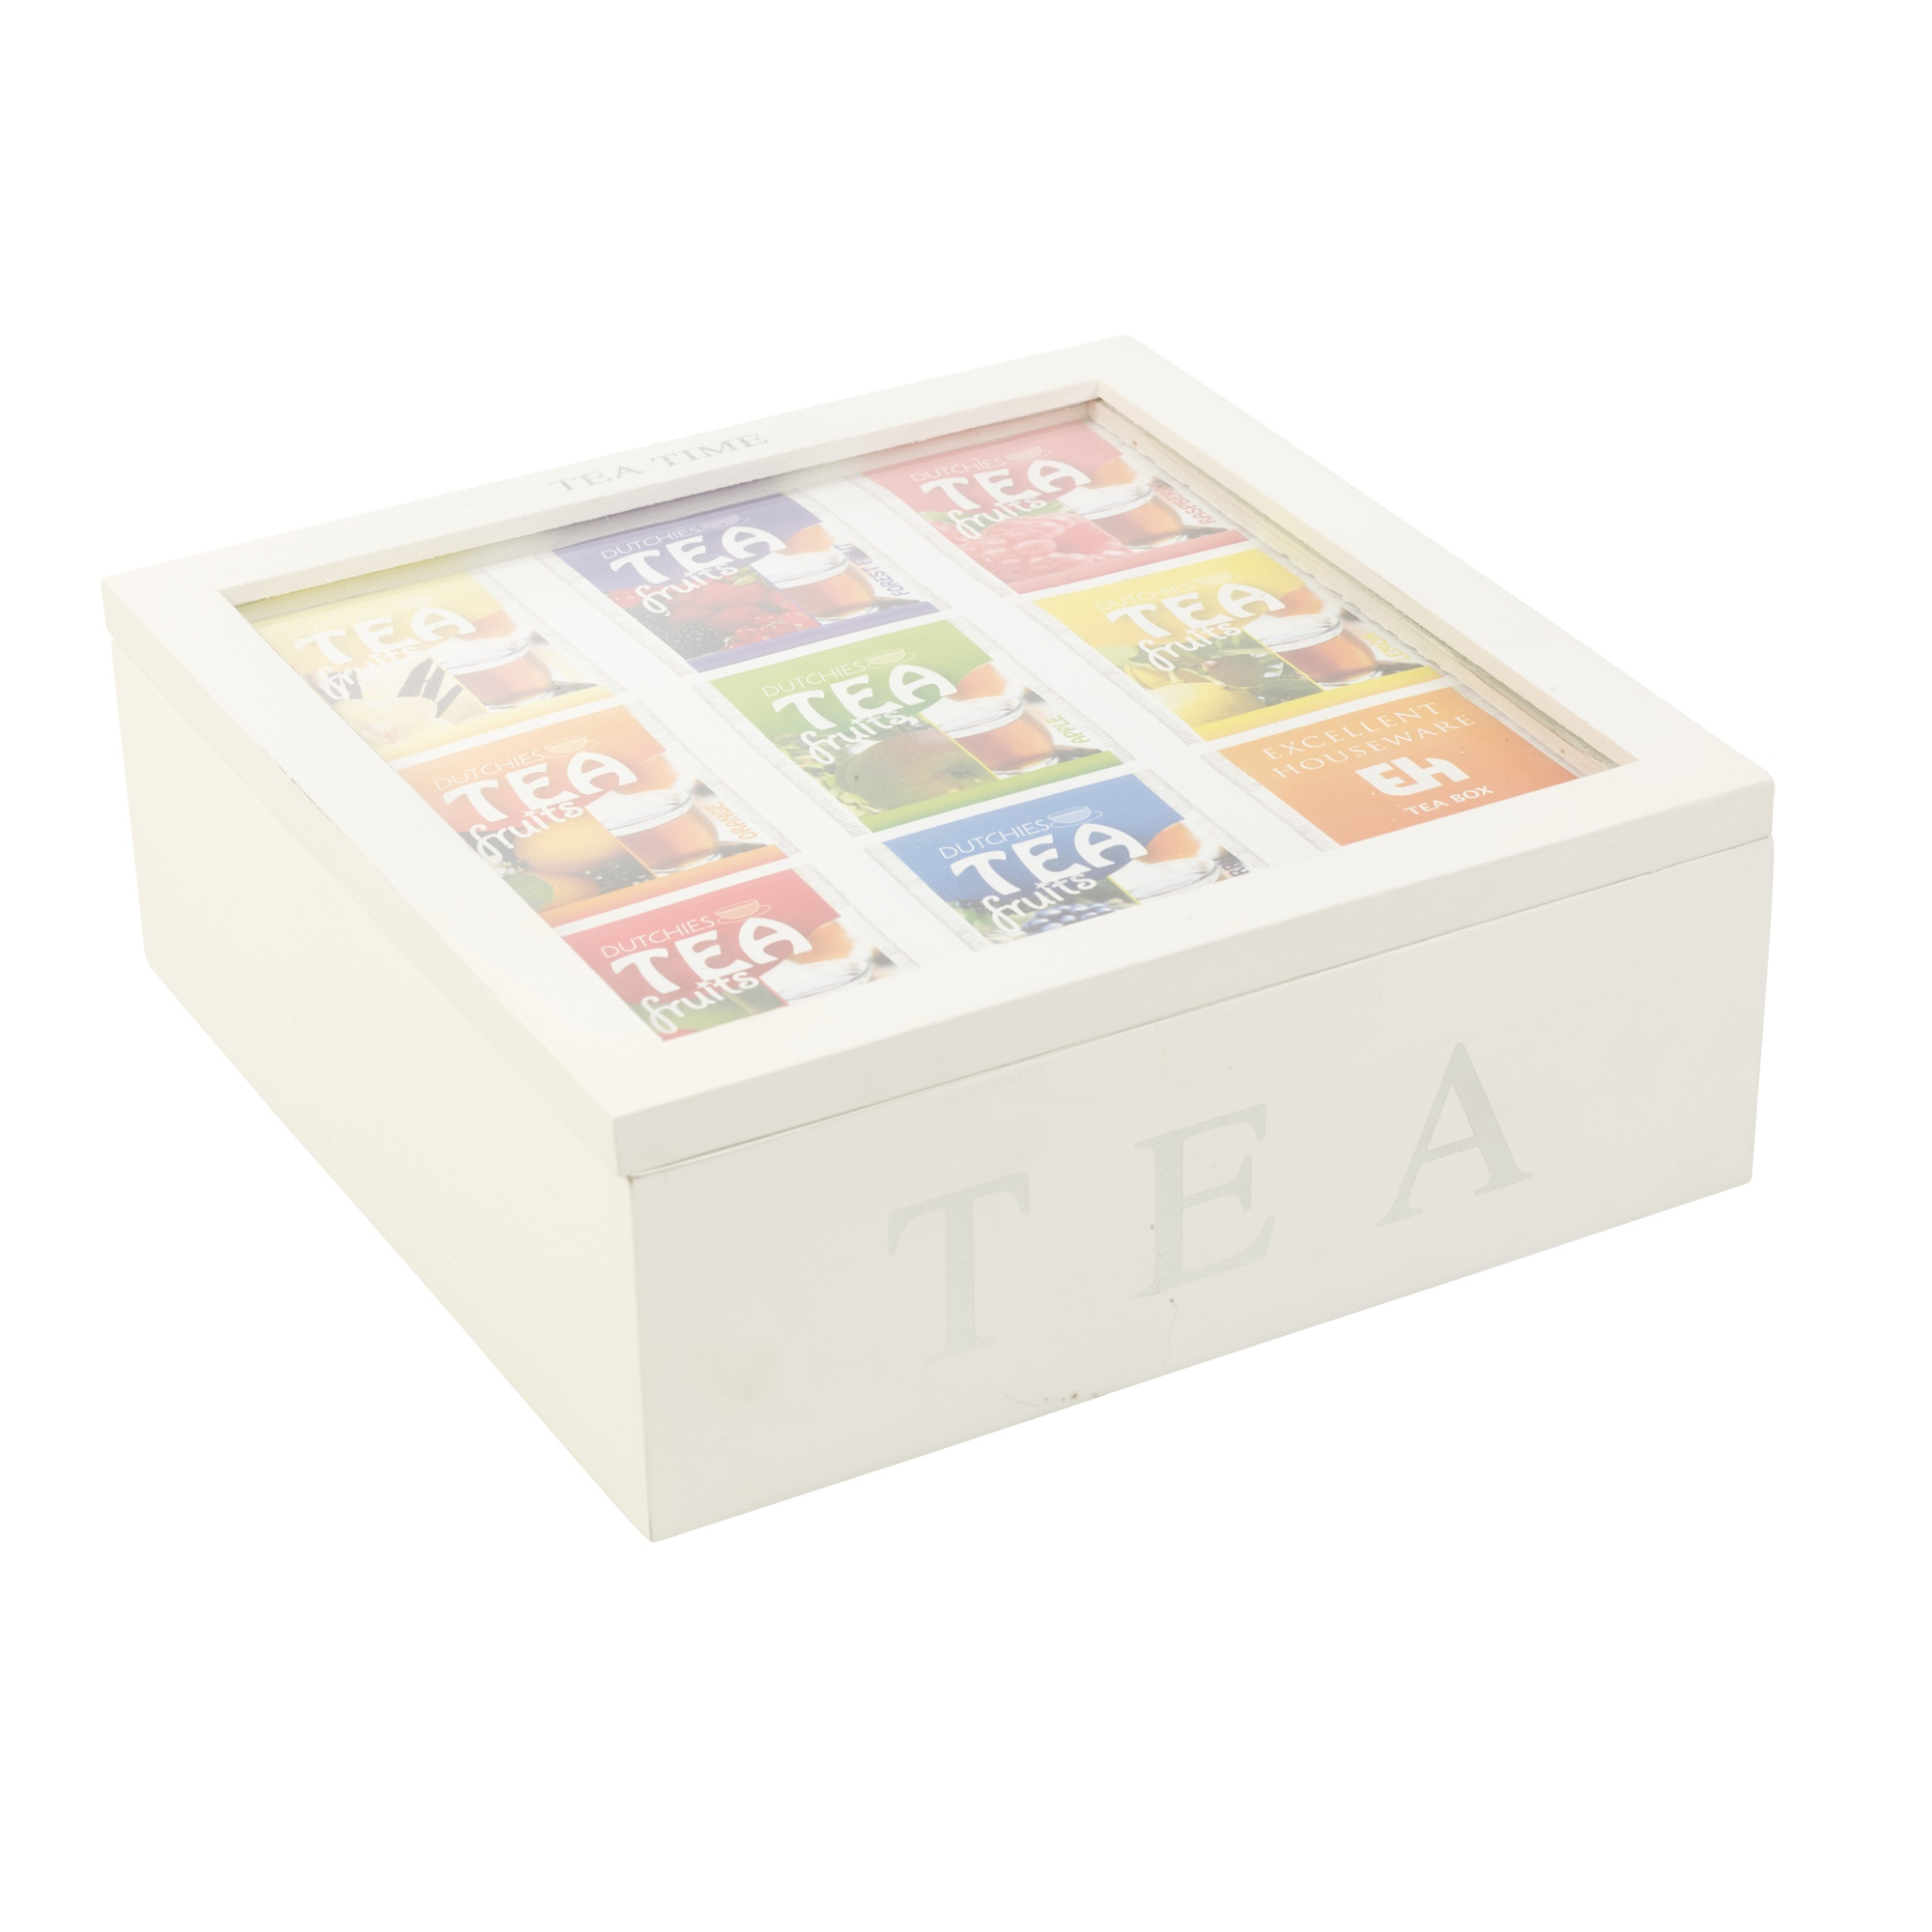 Wooden MDF Tea Box 9 Section Clear Lid Compartments ...